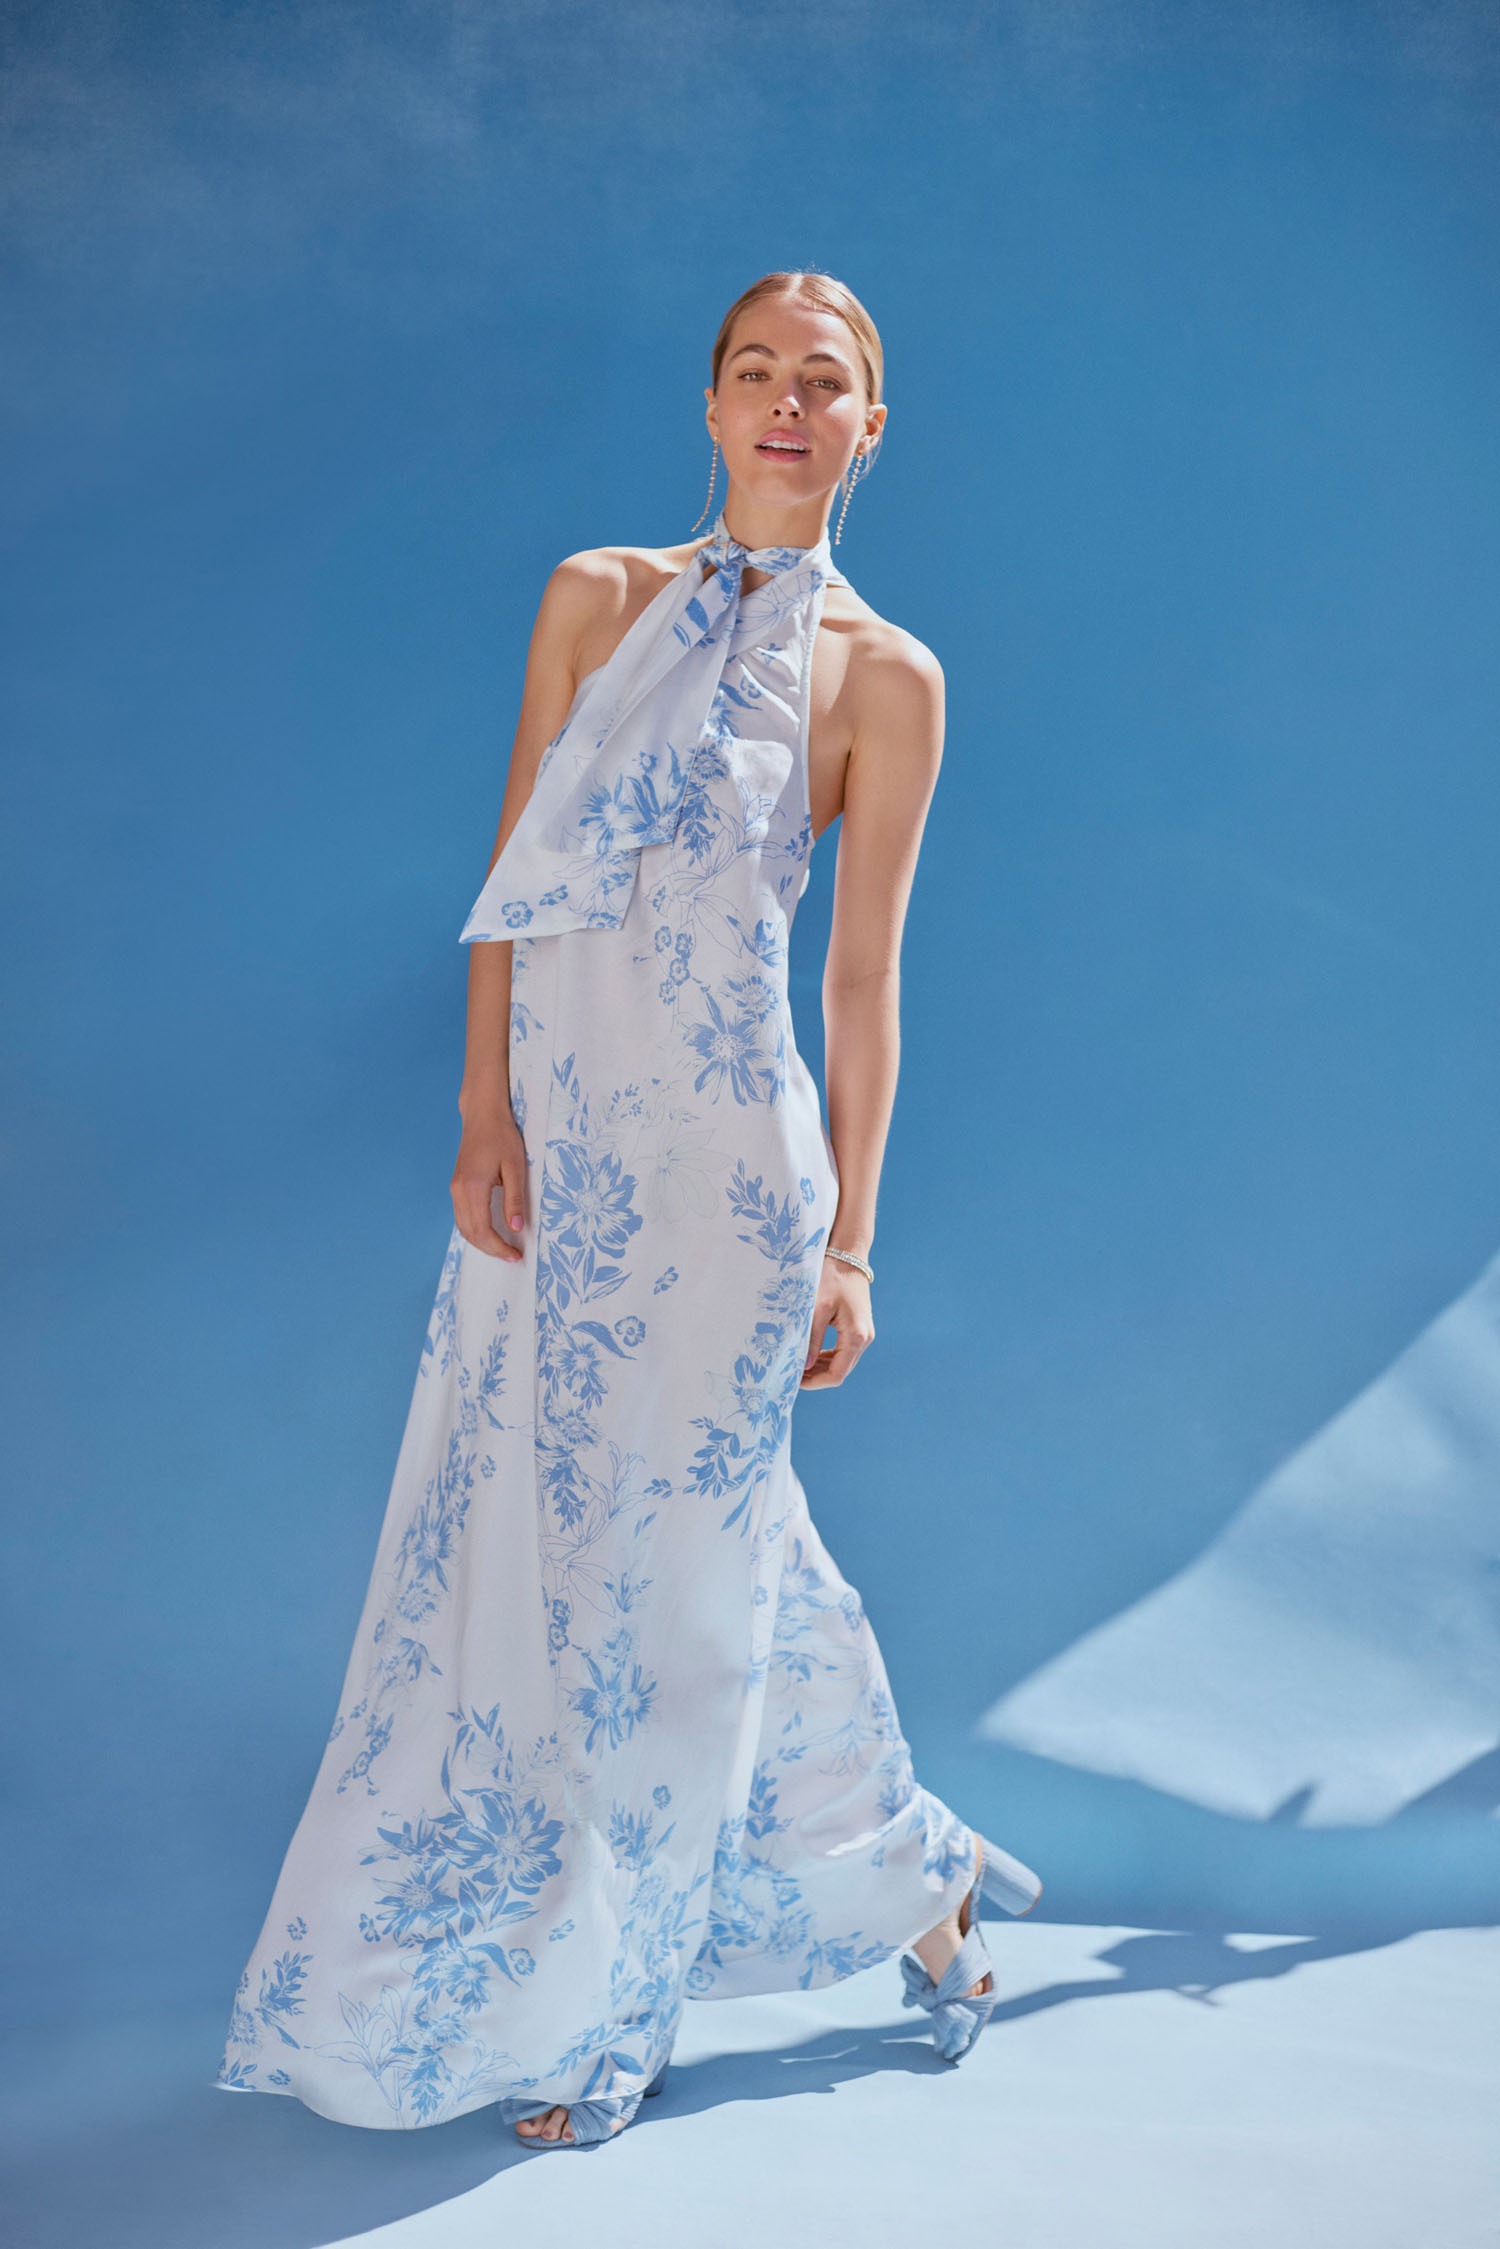 BHLDN x Free People Capsule Collection blue floral dress